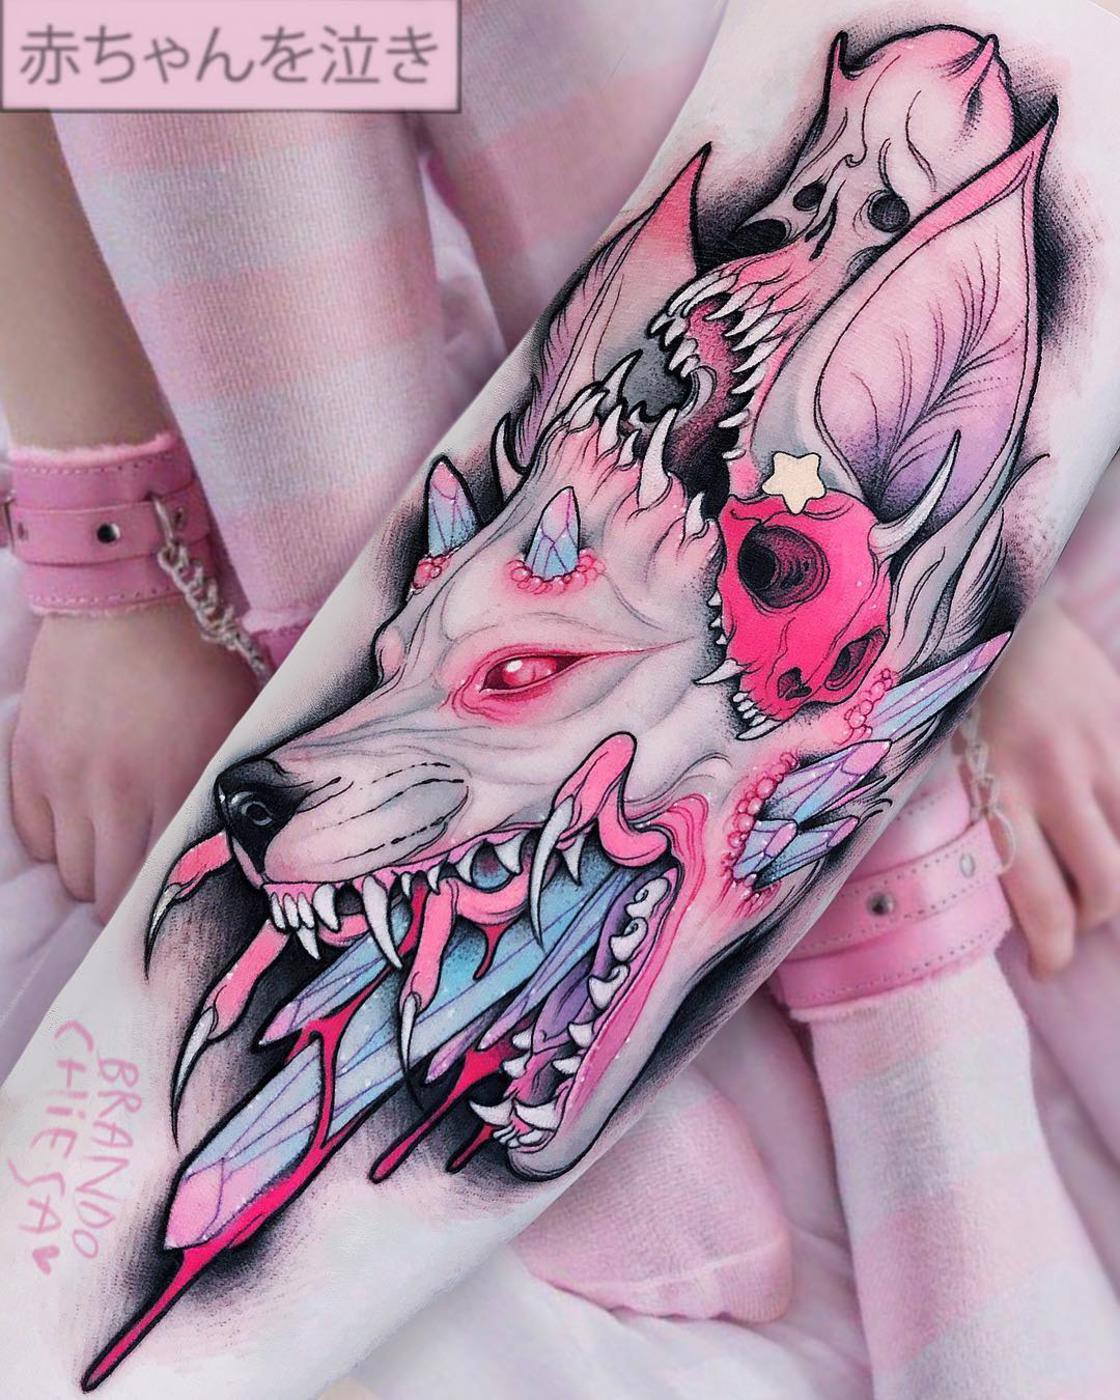 Pink gore and Pop Culture – The latest tattoos by Brando Chiesa